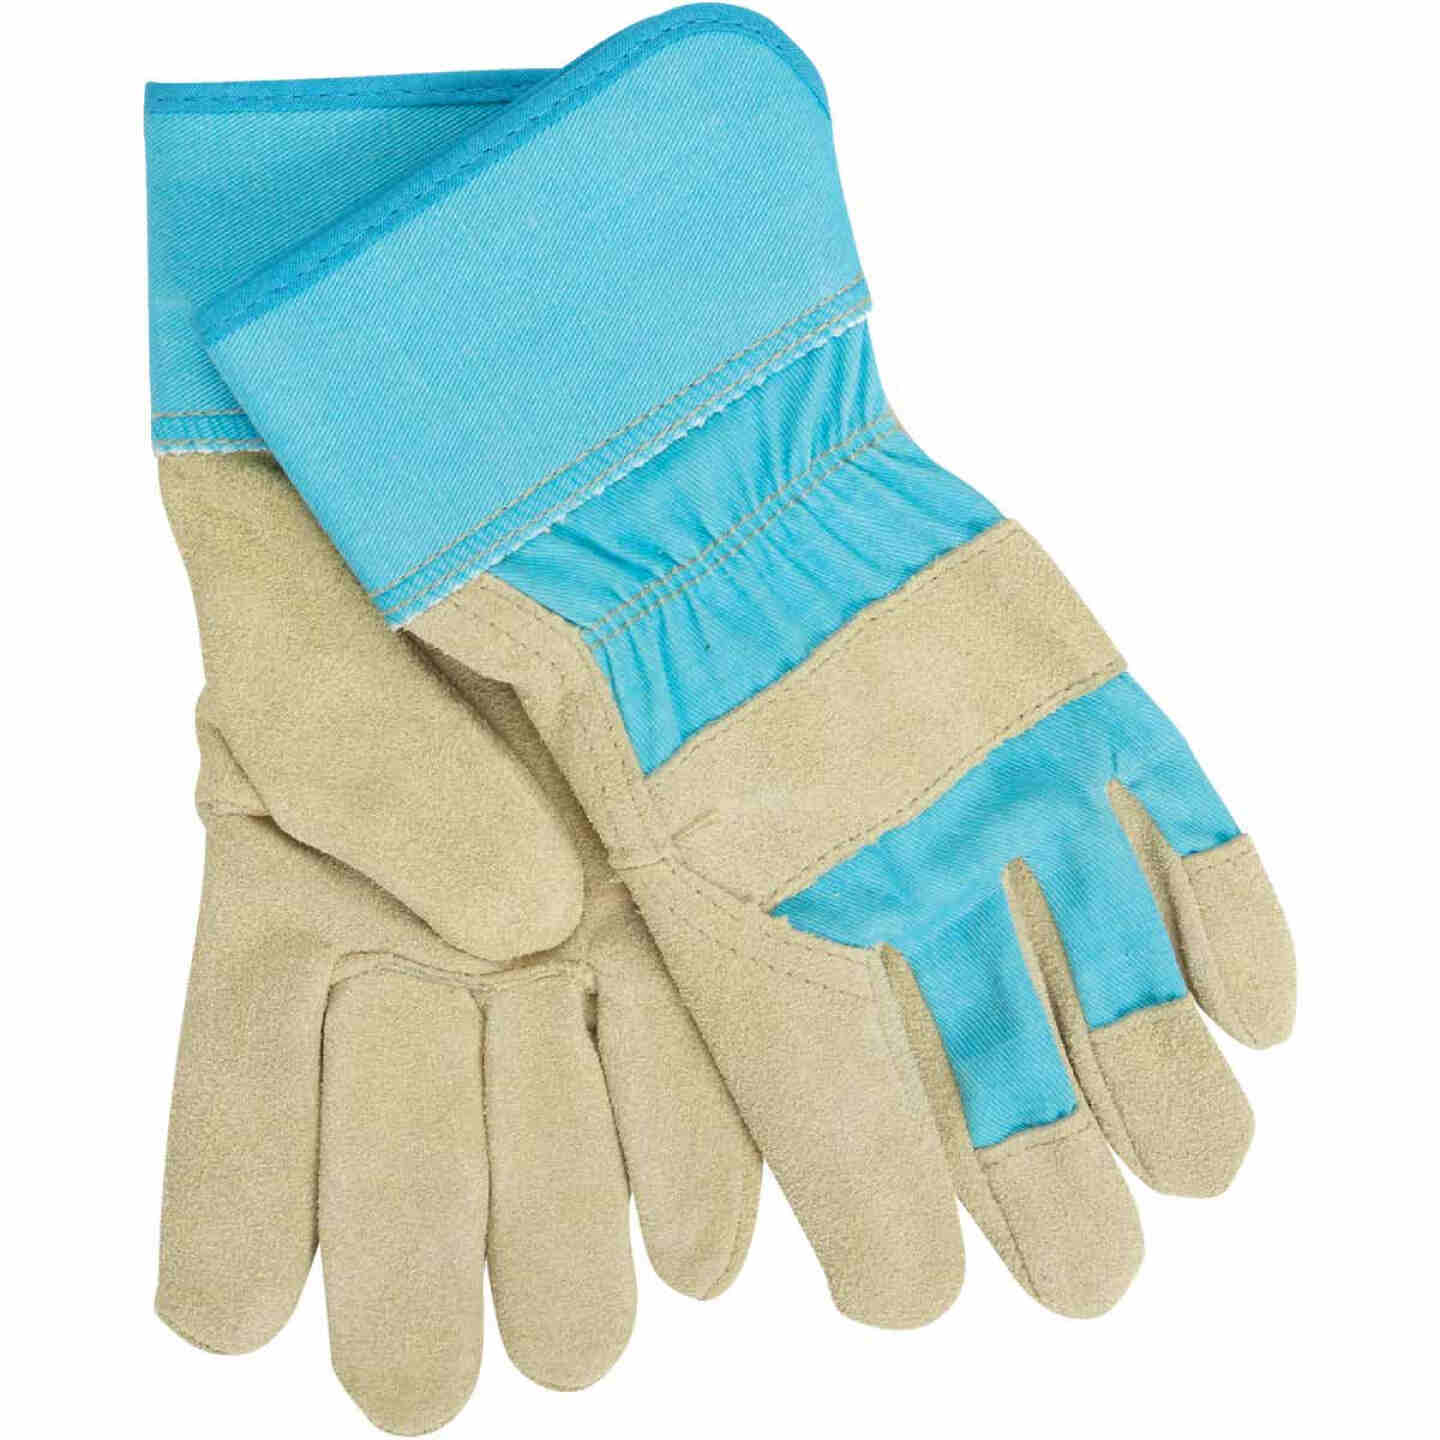 West Chester Protective Gear Dirty Work Women's Medium Leather Work Glove Image 1